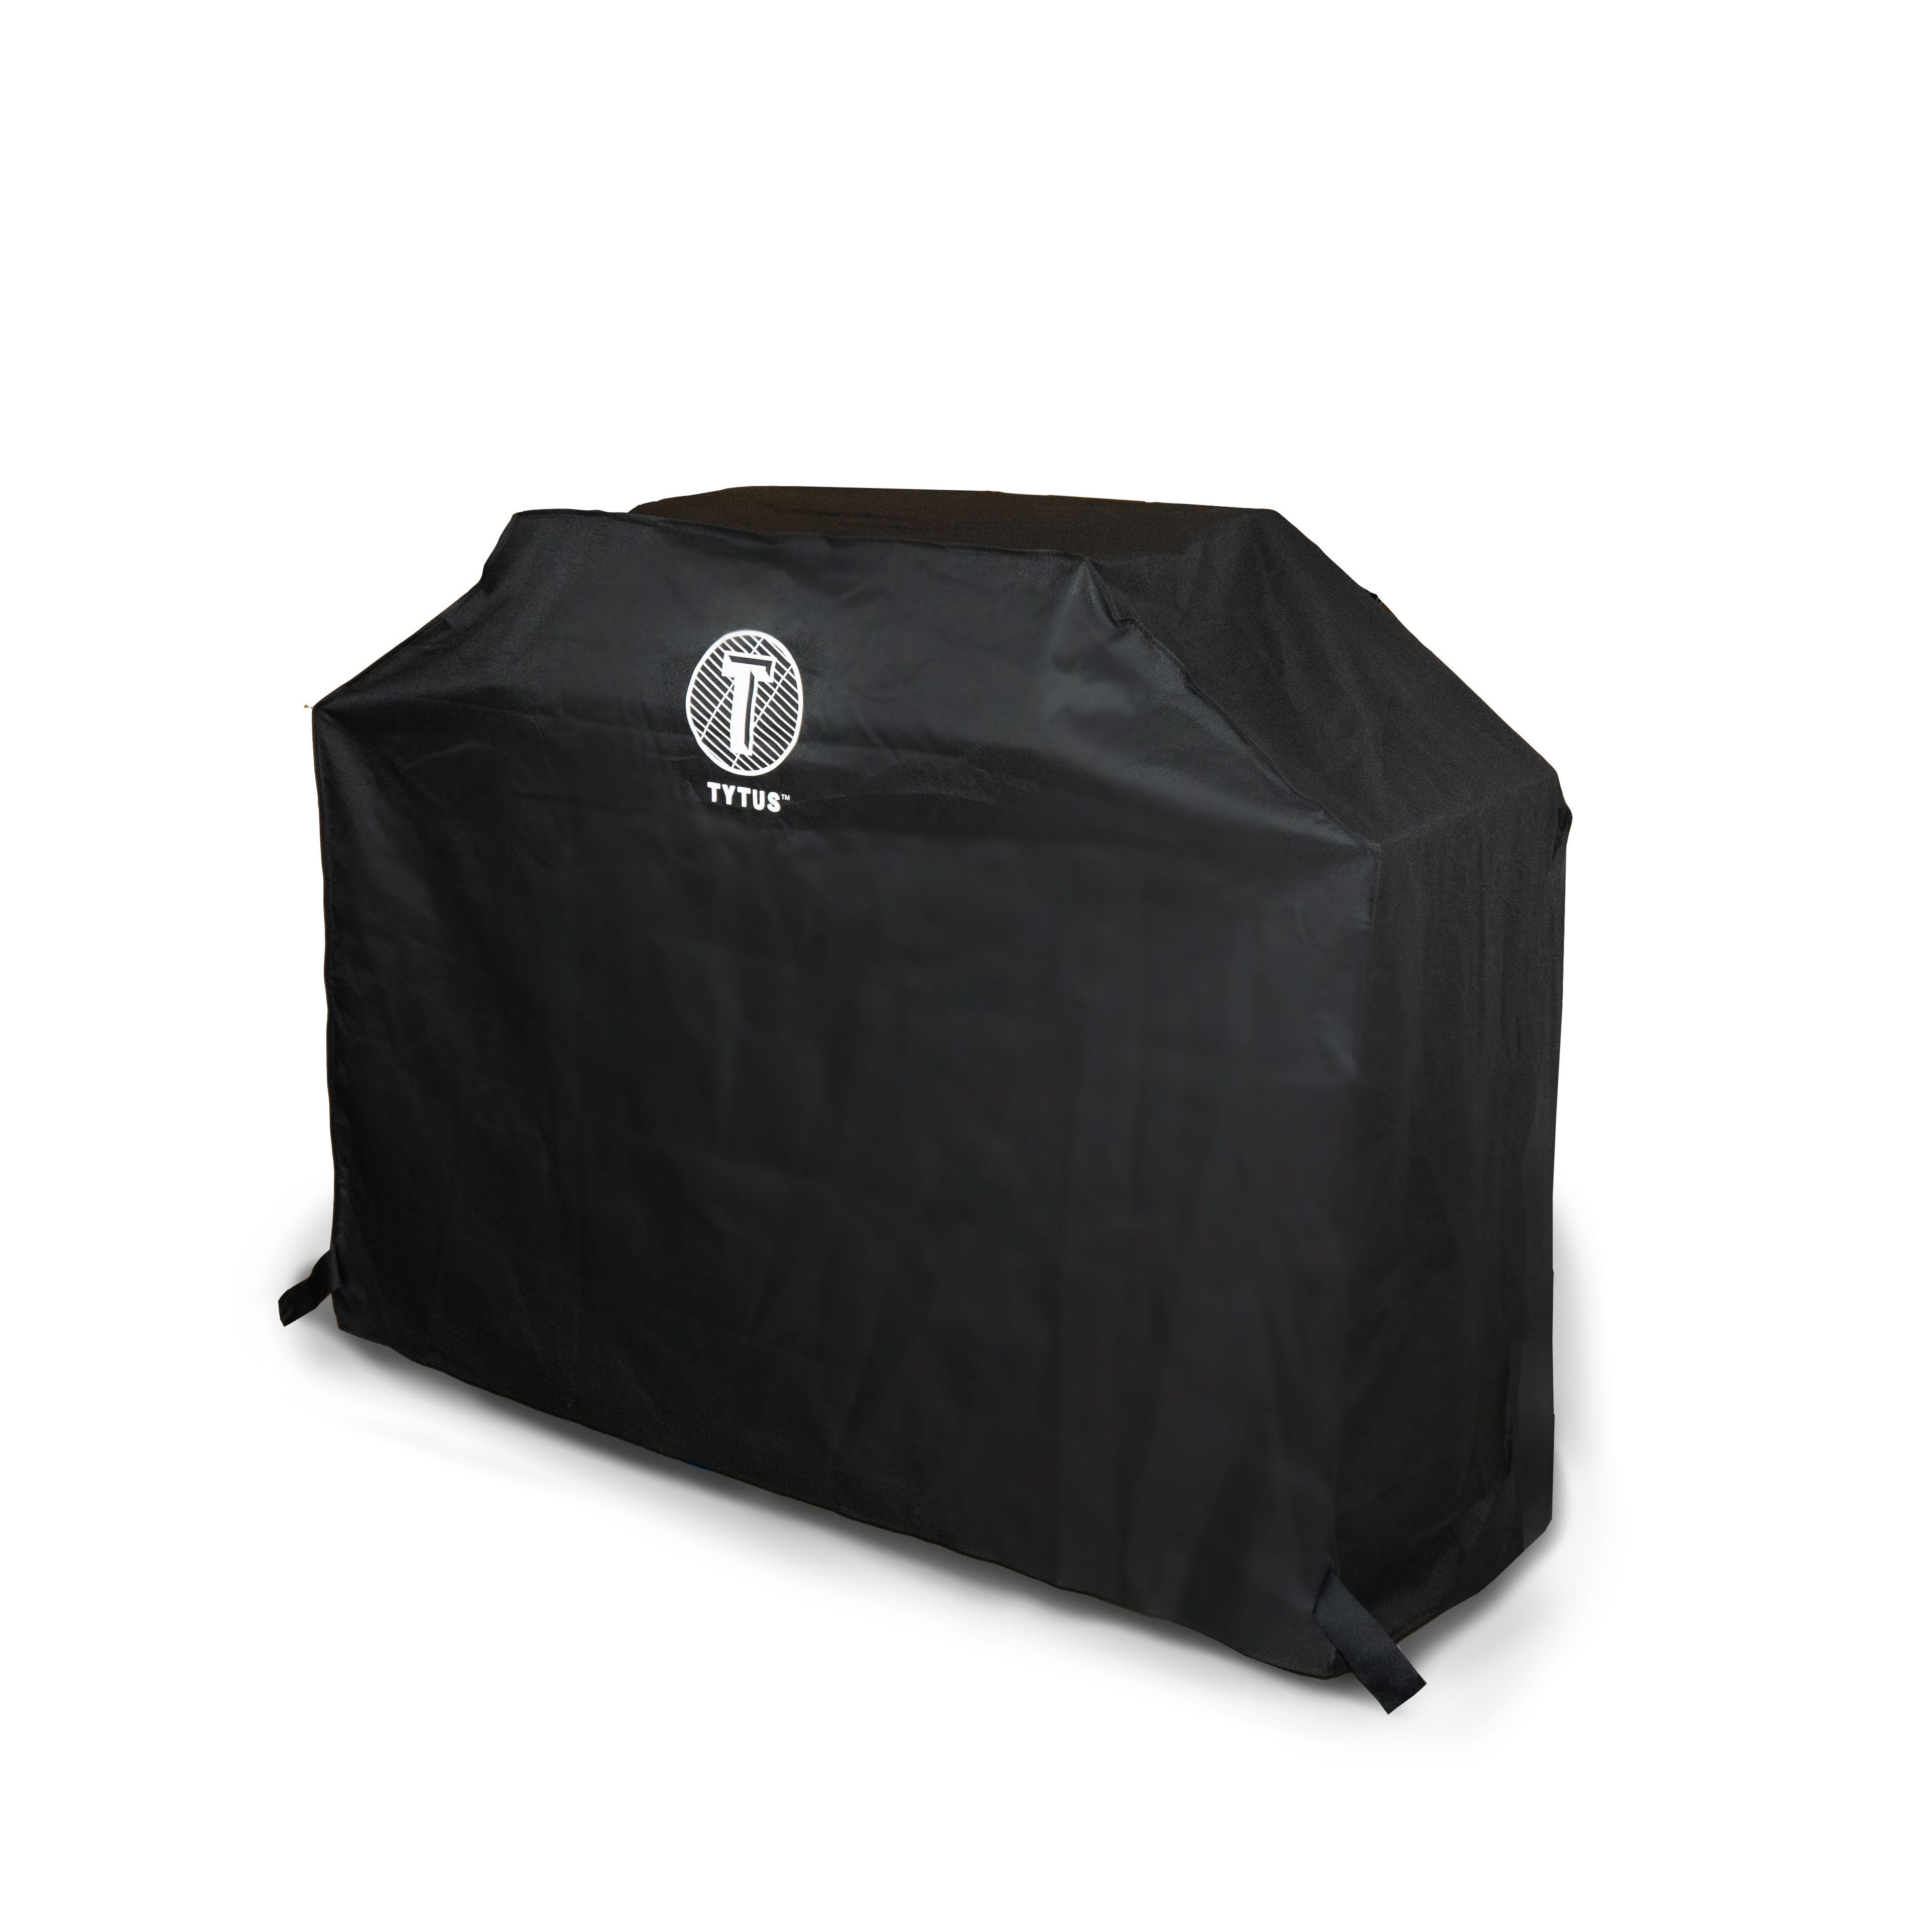 "TYTUS Island 70"" Premium Grill Cover (fits TYTUS Grill Islands) Accessories Tytus Grills"